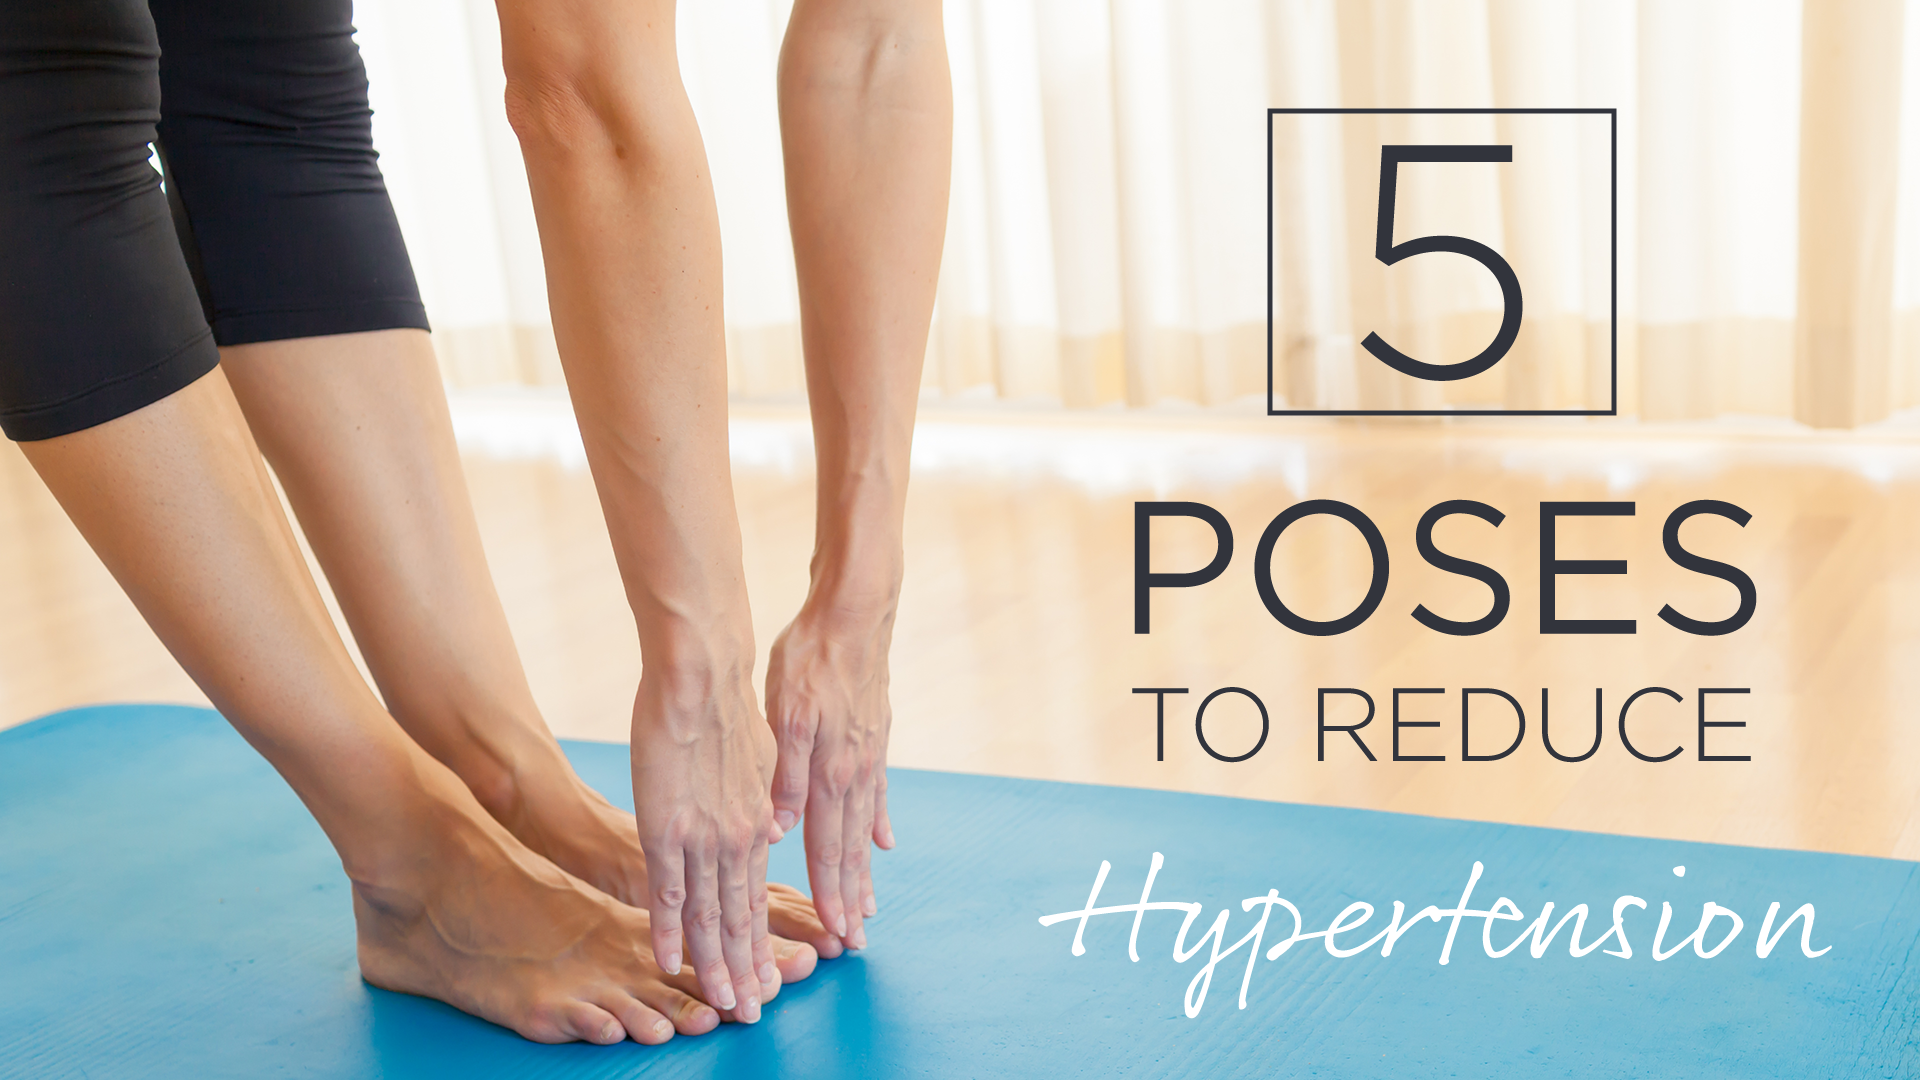 35 Poses to Reduce Hypertension Yoga International - induced.info